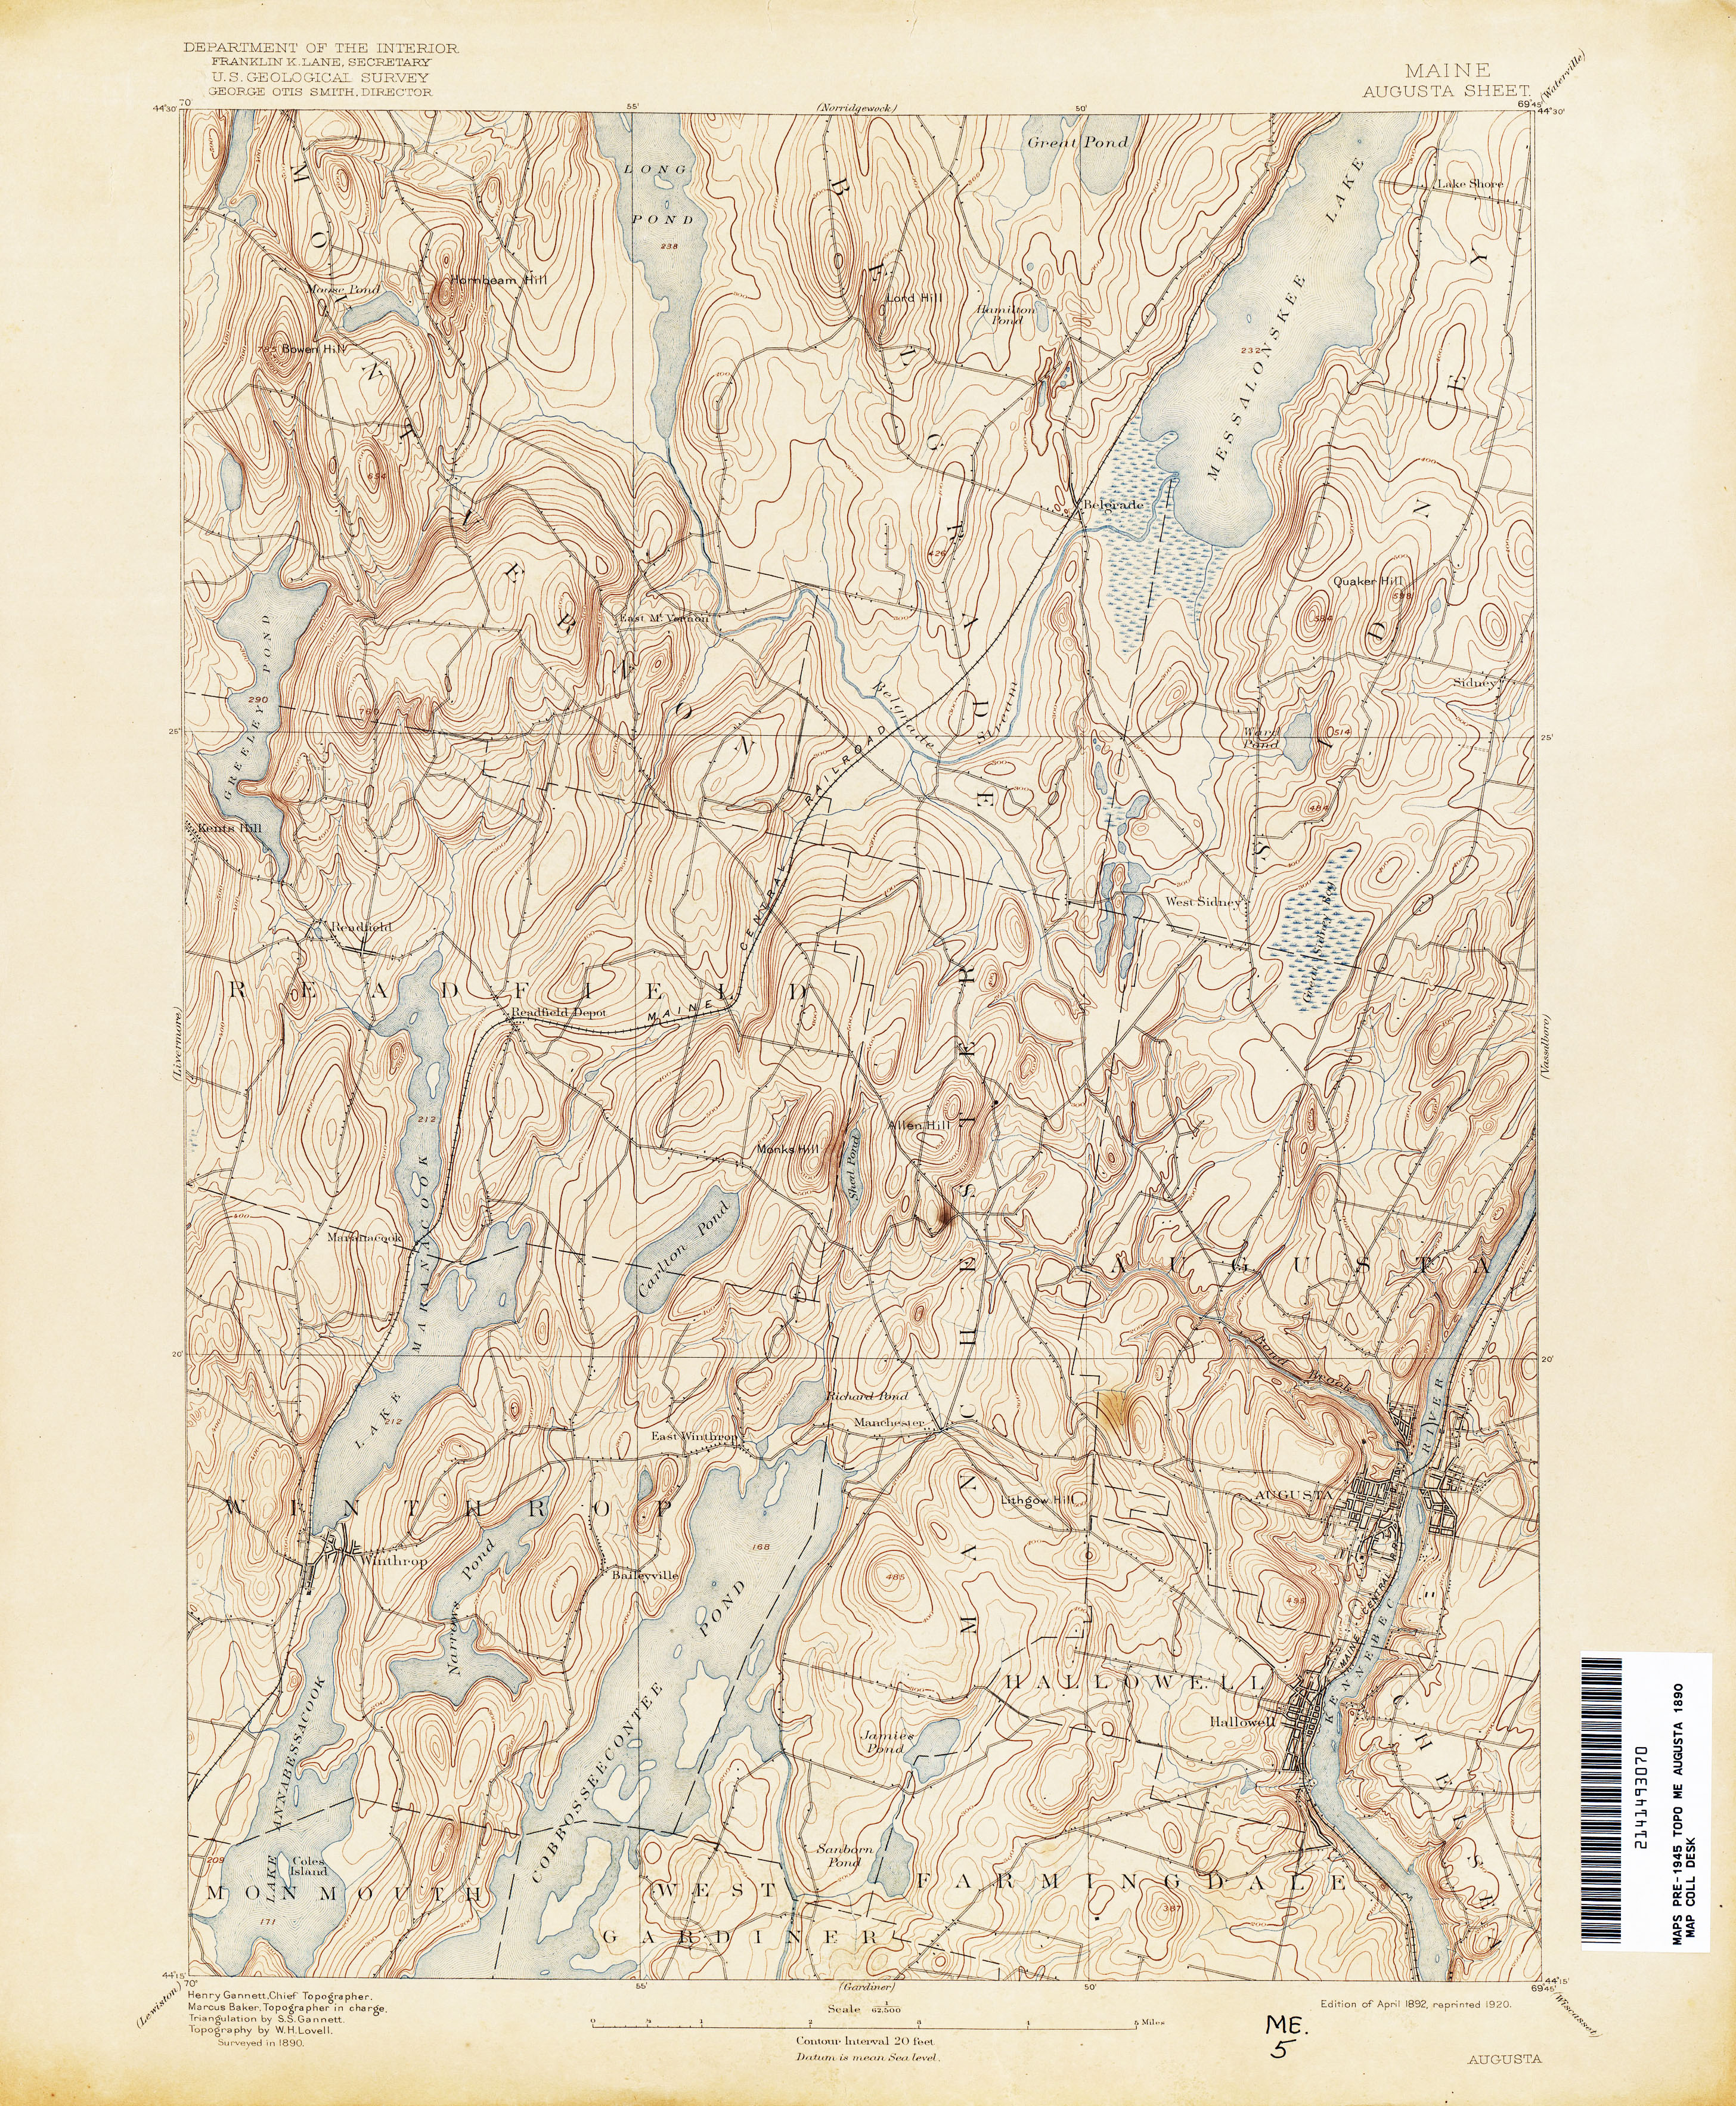 Maine Historical Topographic Maps - Perry-Castañeda Map Collection on